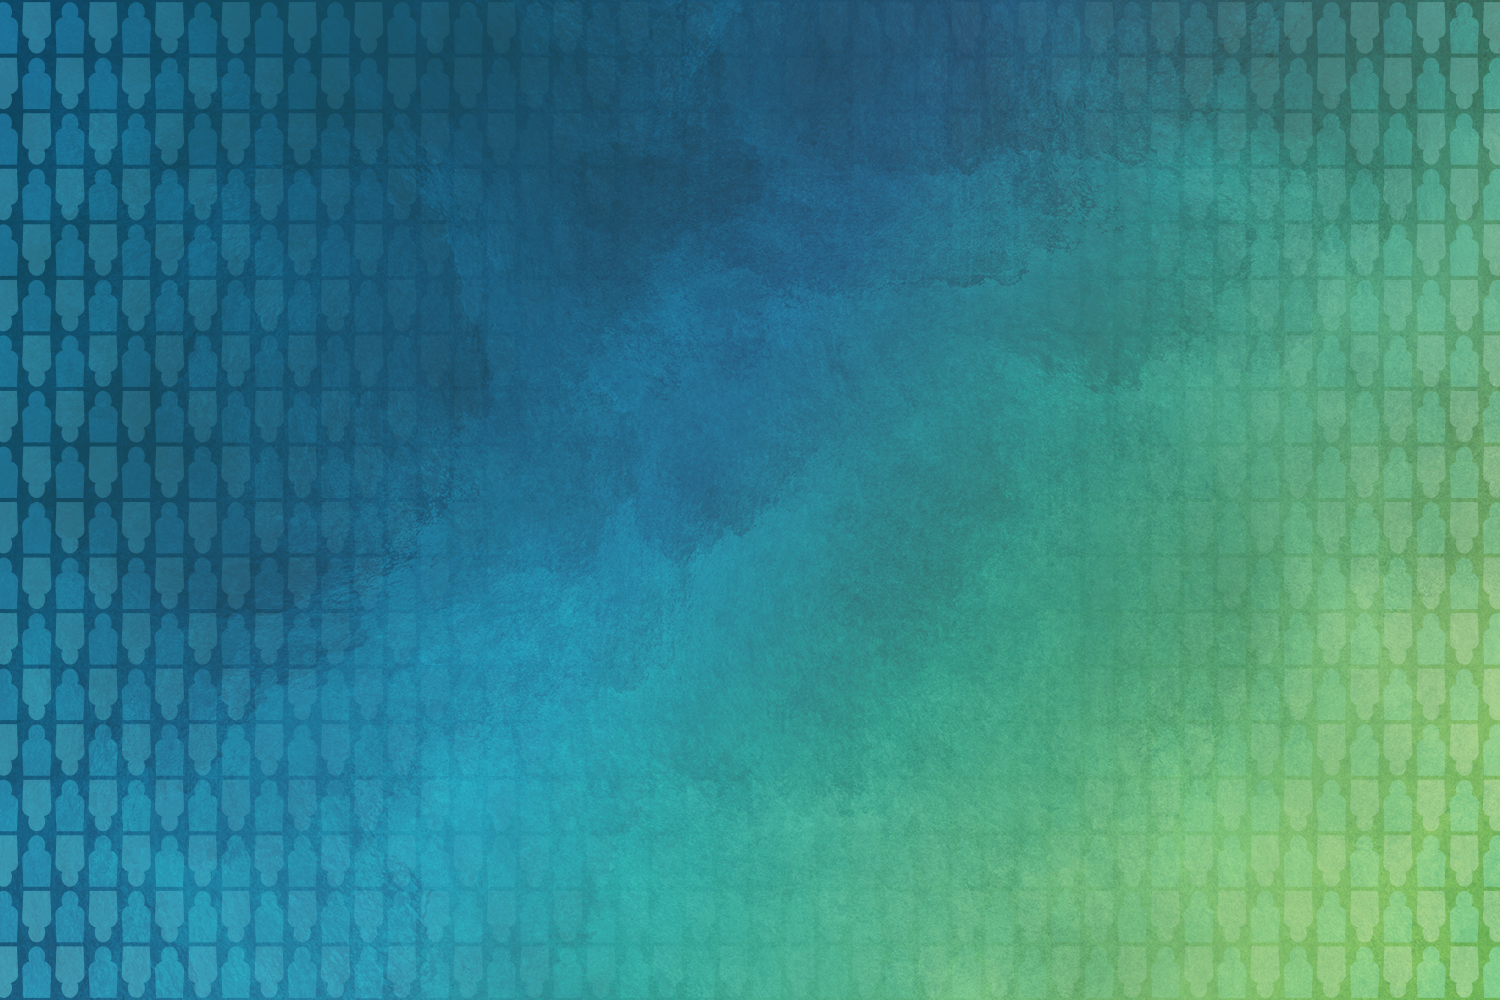 watercolor texture over blue and green background